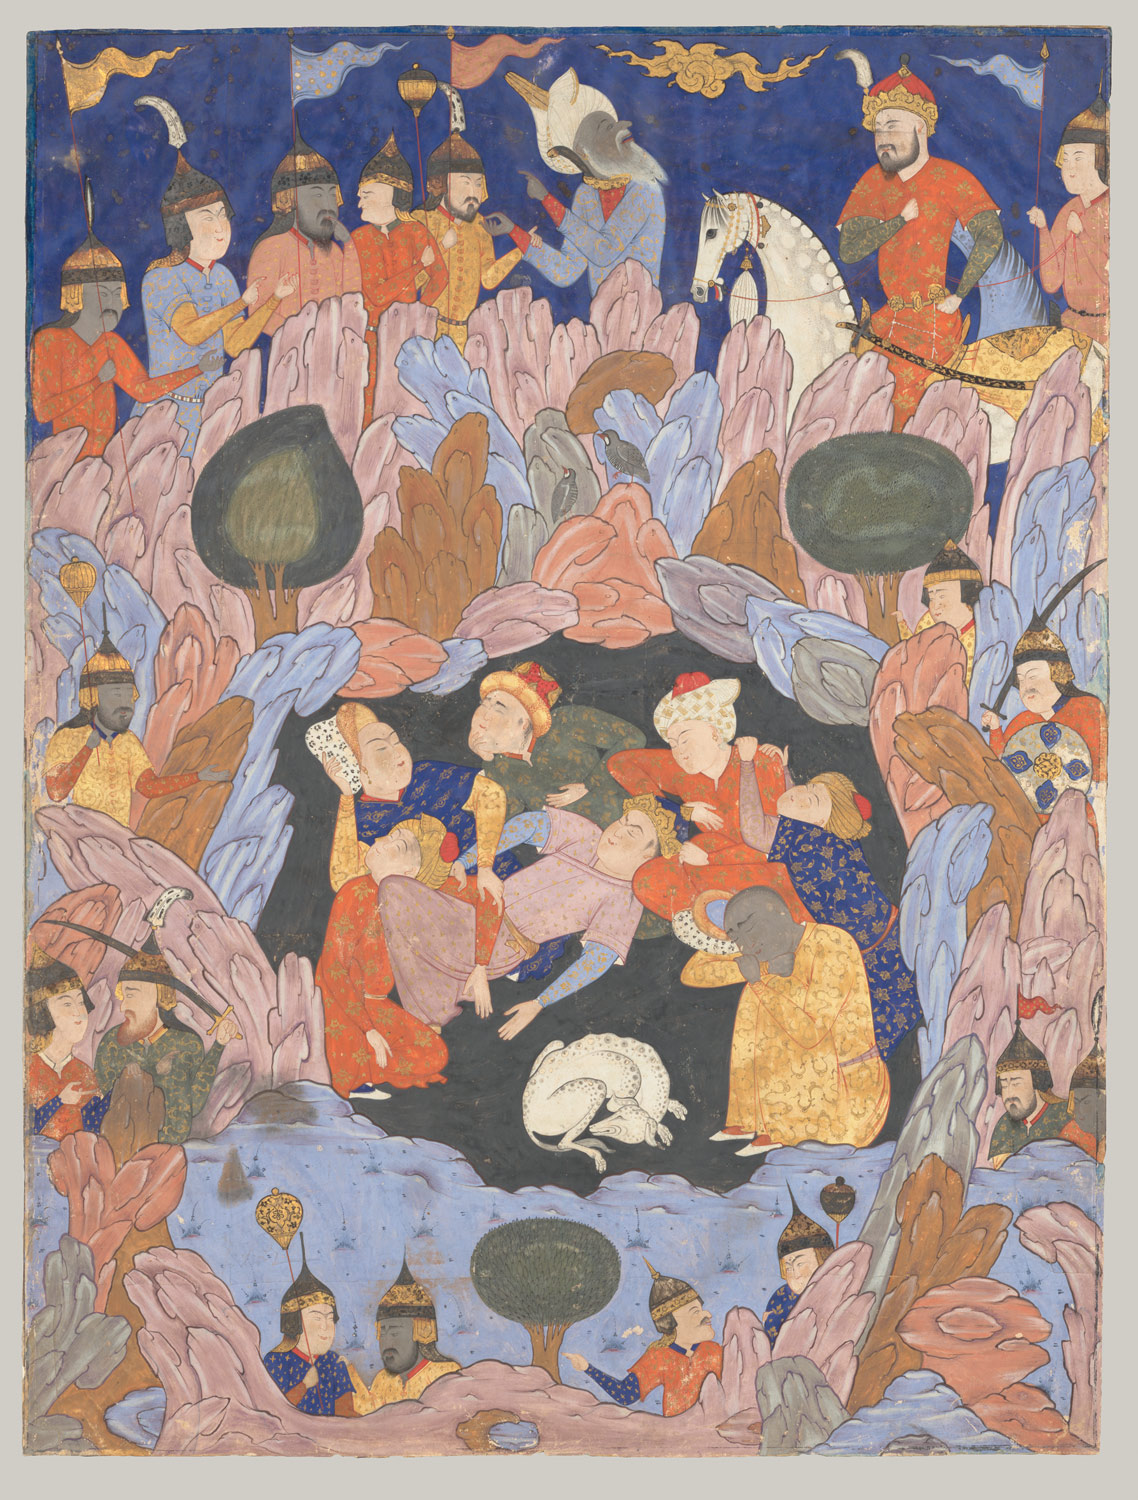 The Seven Sleepers of Ephesus Discovered by Alexander the Great, Folio from a Falnama (Book of Omens)